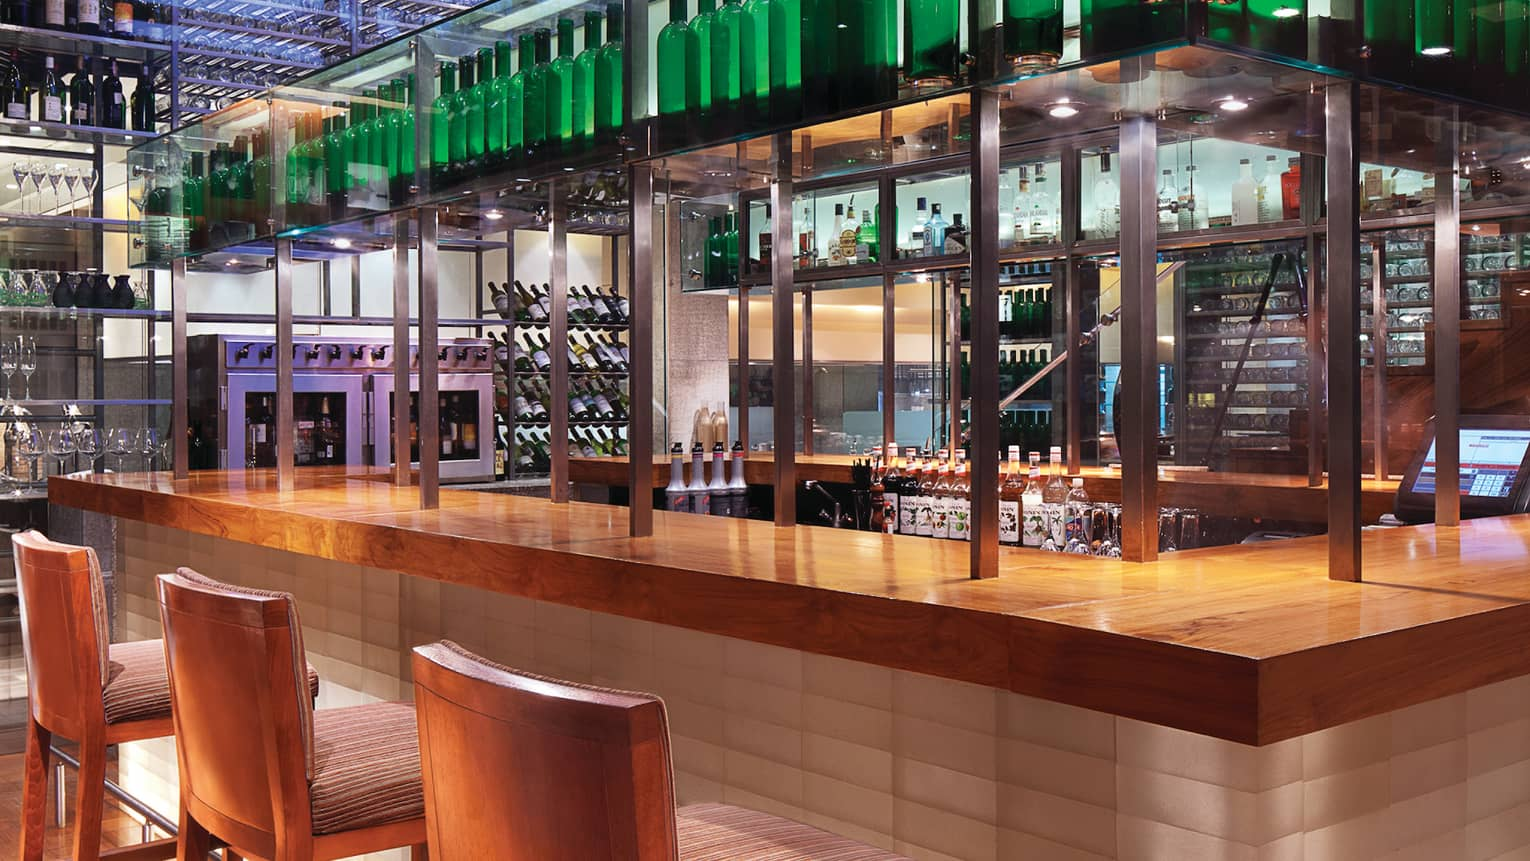 San Qi stools line modern wood bar with steel poles, shelves with wine bottles